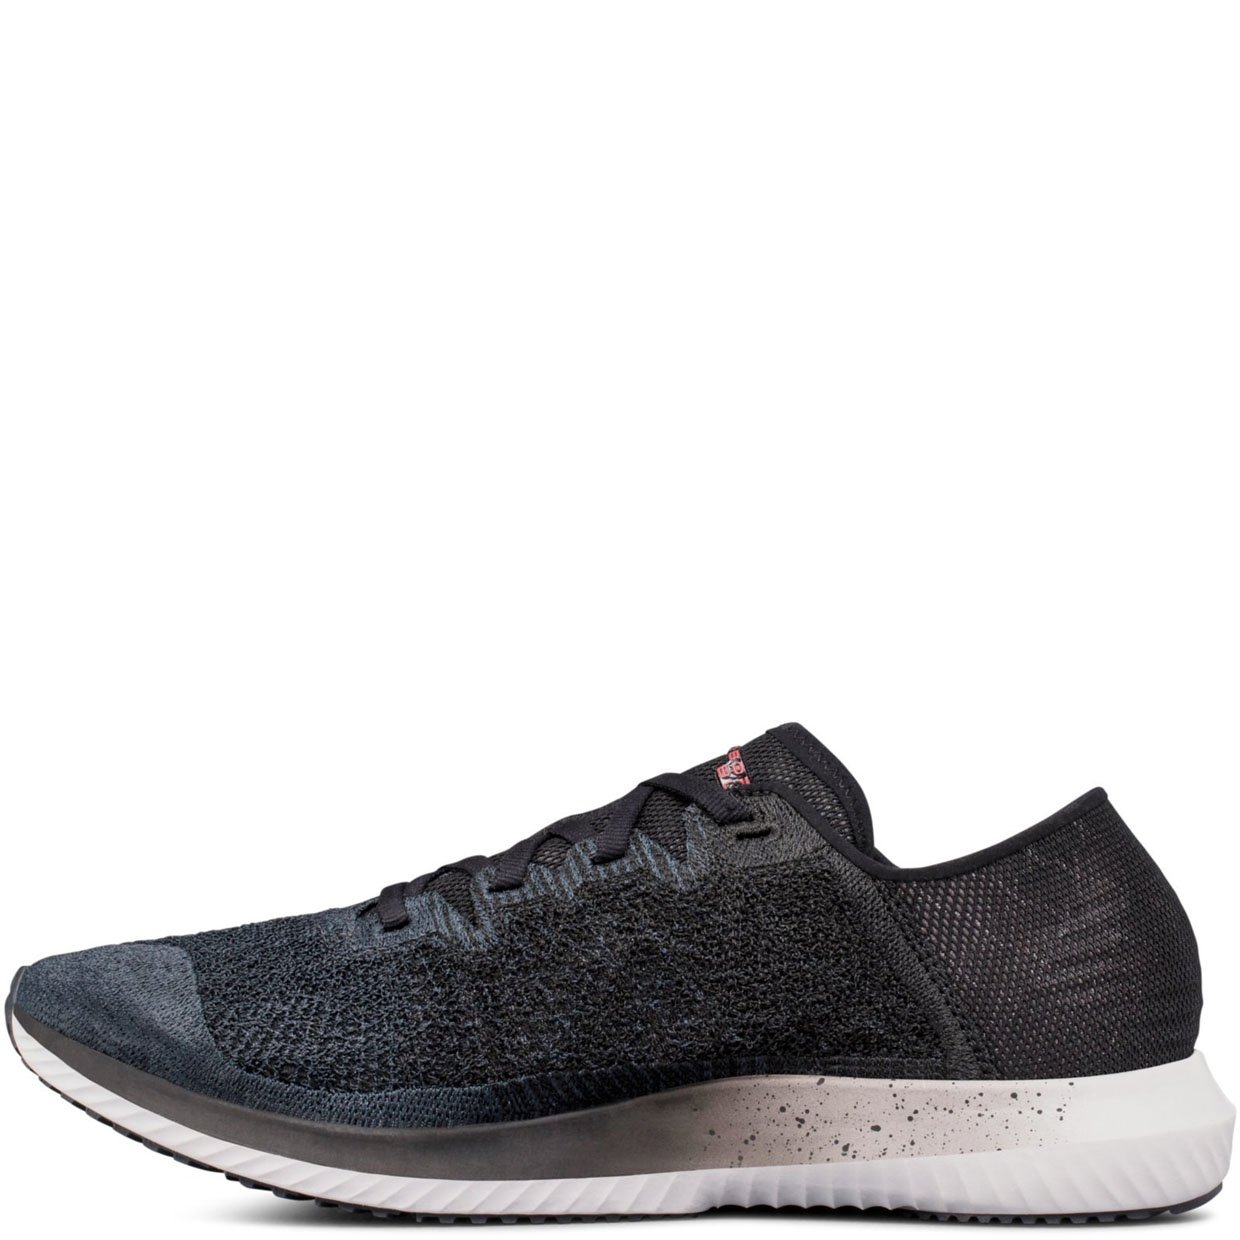 Кроссовки Under armour Threadborne™ Blur. Фото N3